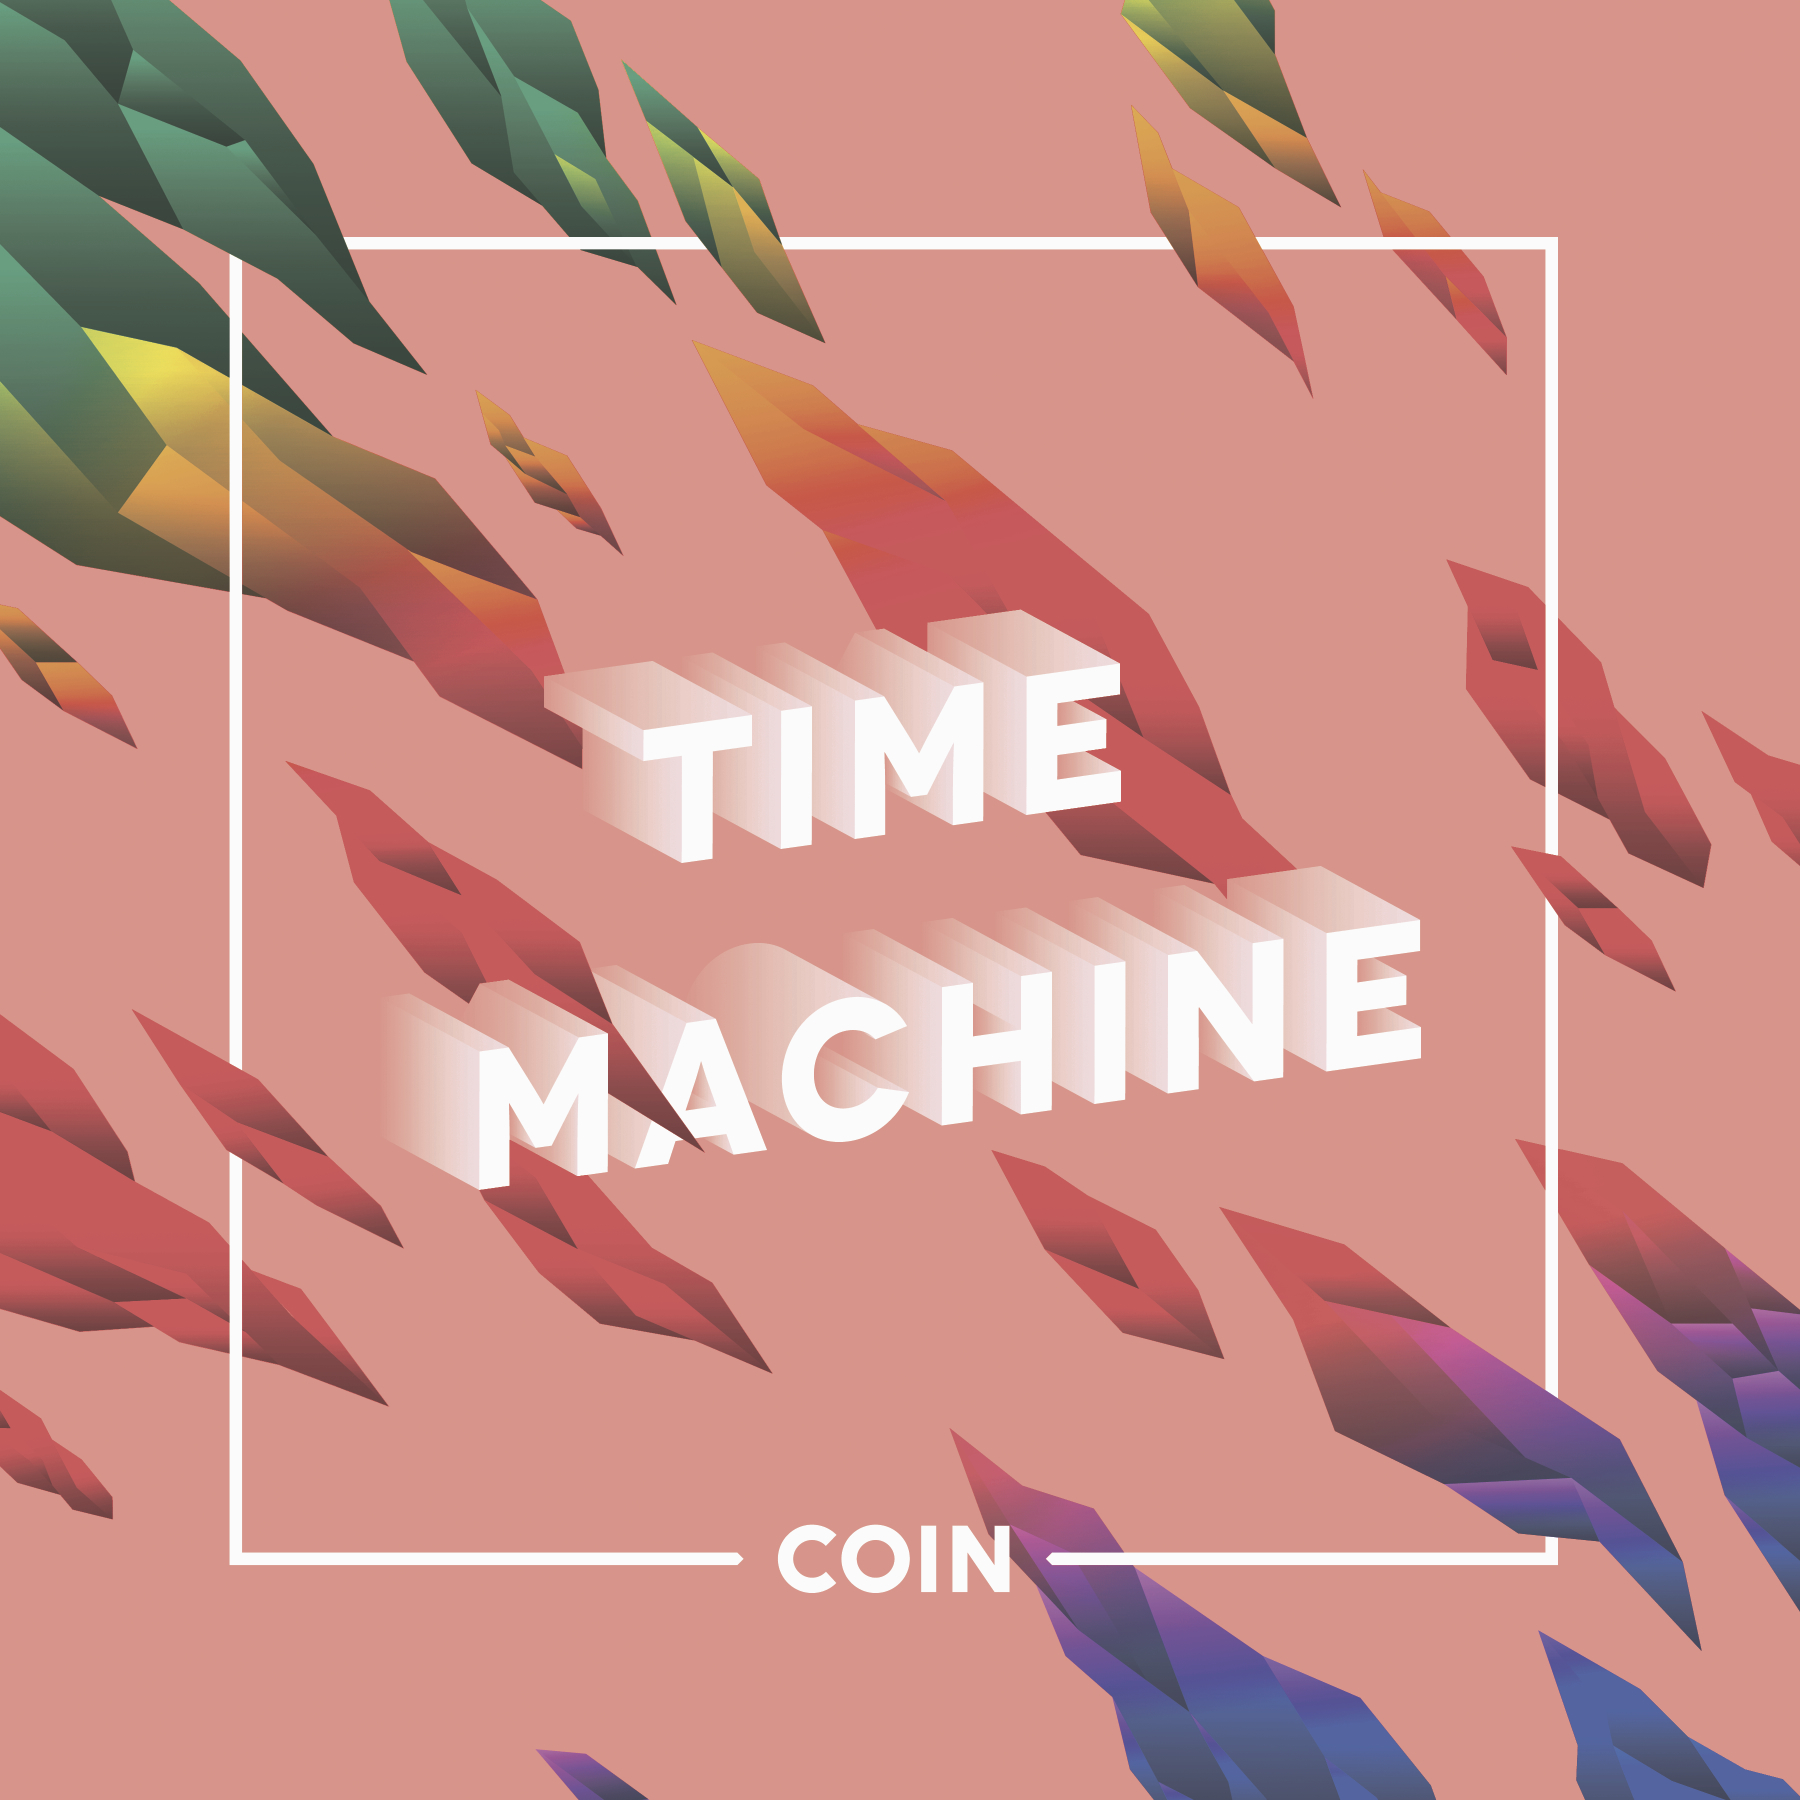 TIME-MACHINE ARTWORK